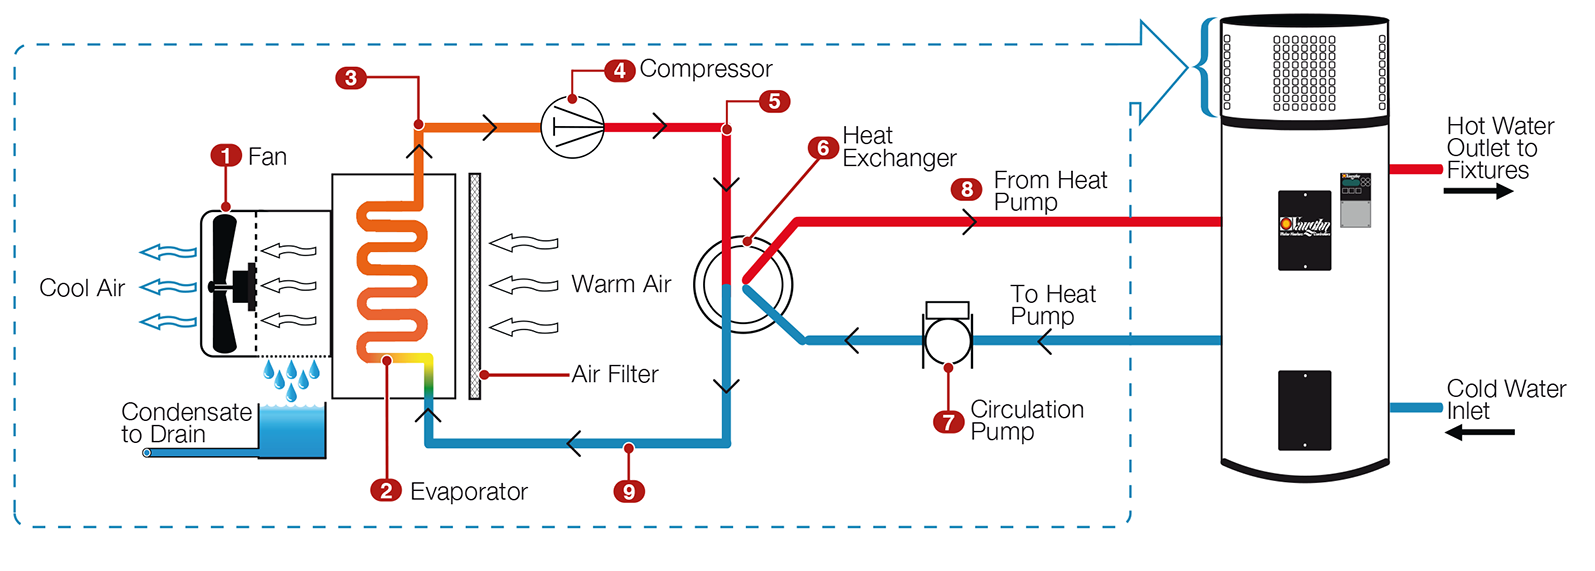 Wiring Diagram For Rheem Electric Water Heater from static-cdn.imageservice.cloud